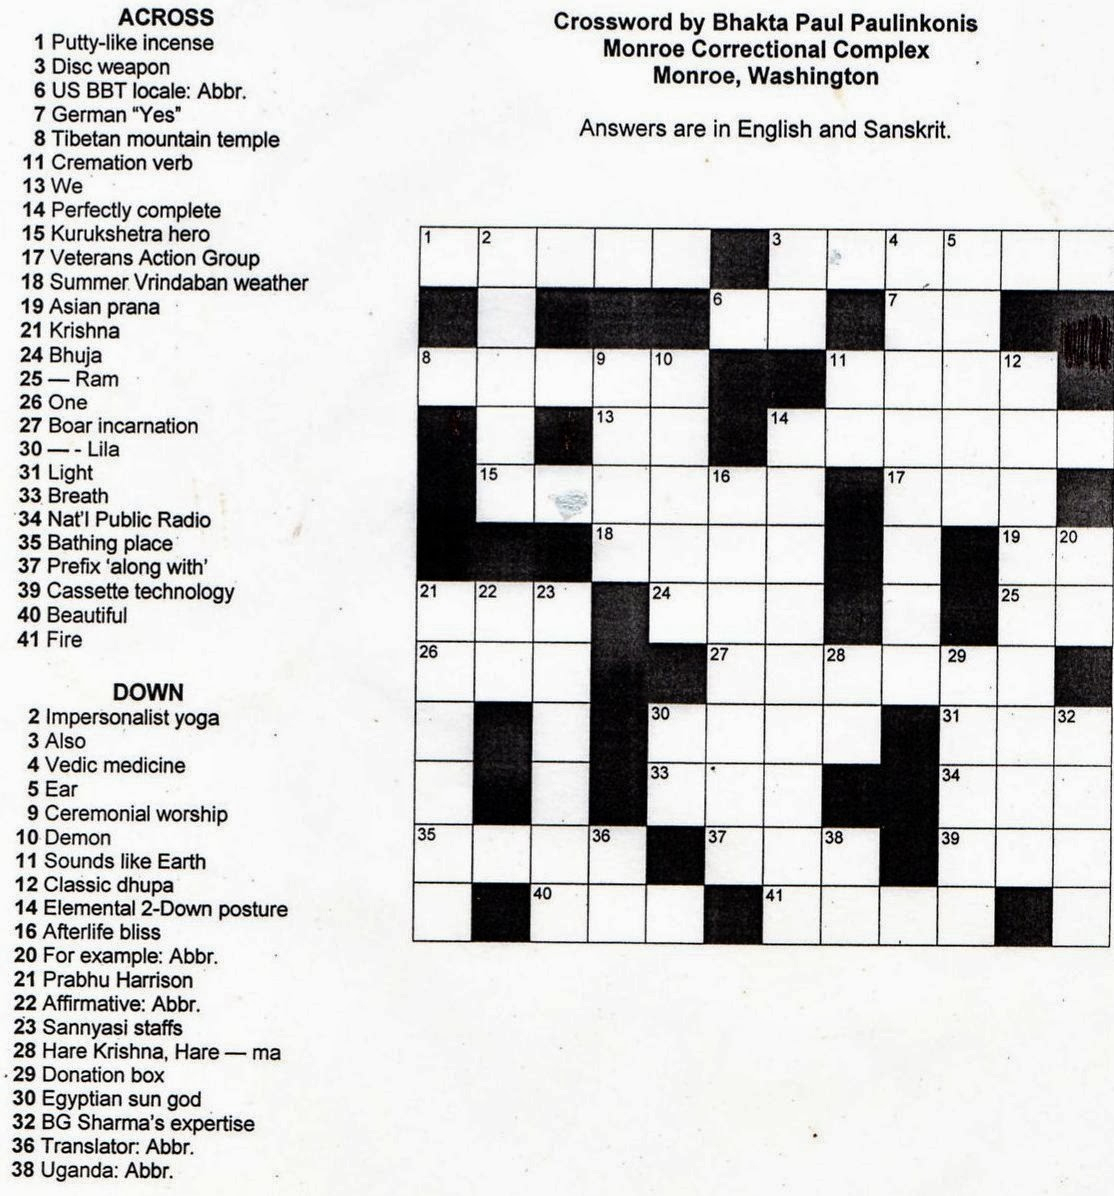 Crosswords Printable Crossword Puzzles For Middle School Puzzle - Free Printable Crossword Puzzles For High School Students